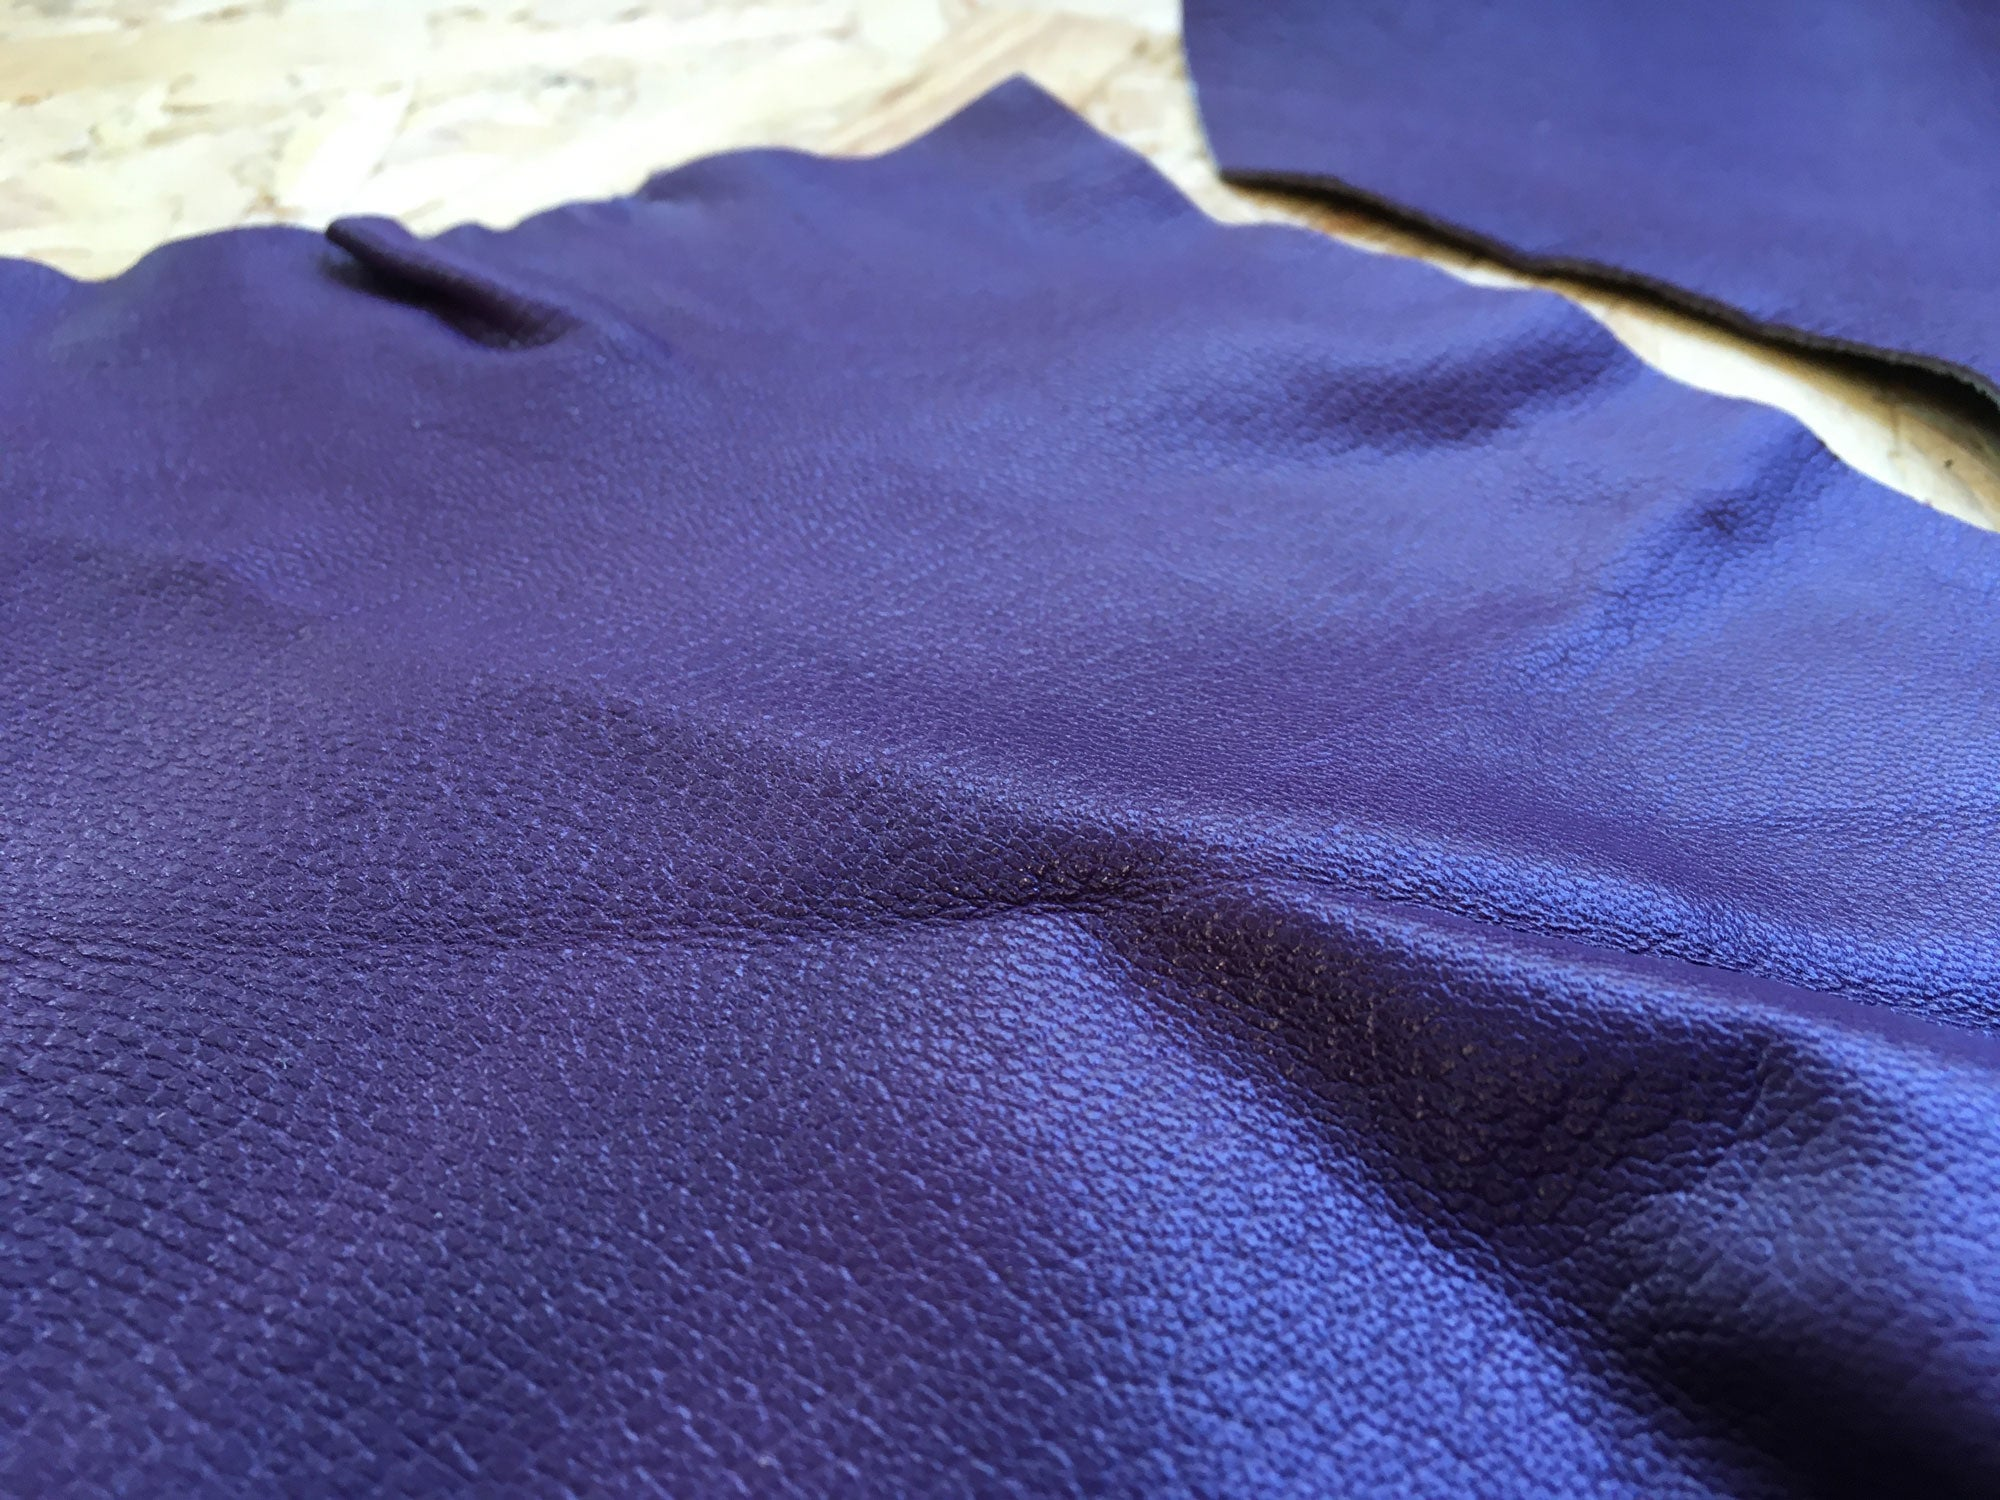 Scrap Leather Offcuts – Purple Goatskin Leather Pieces